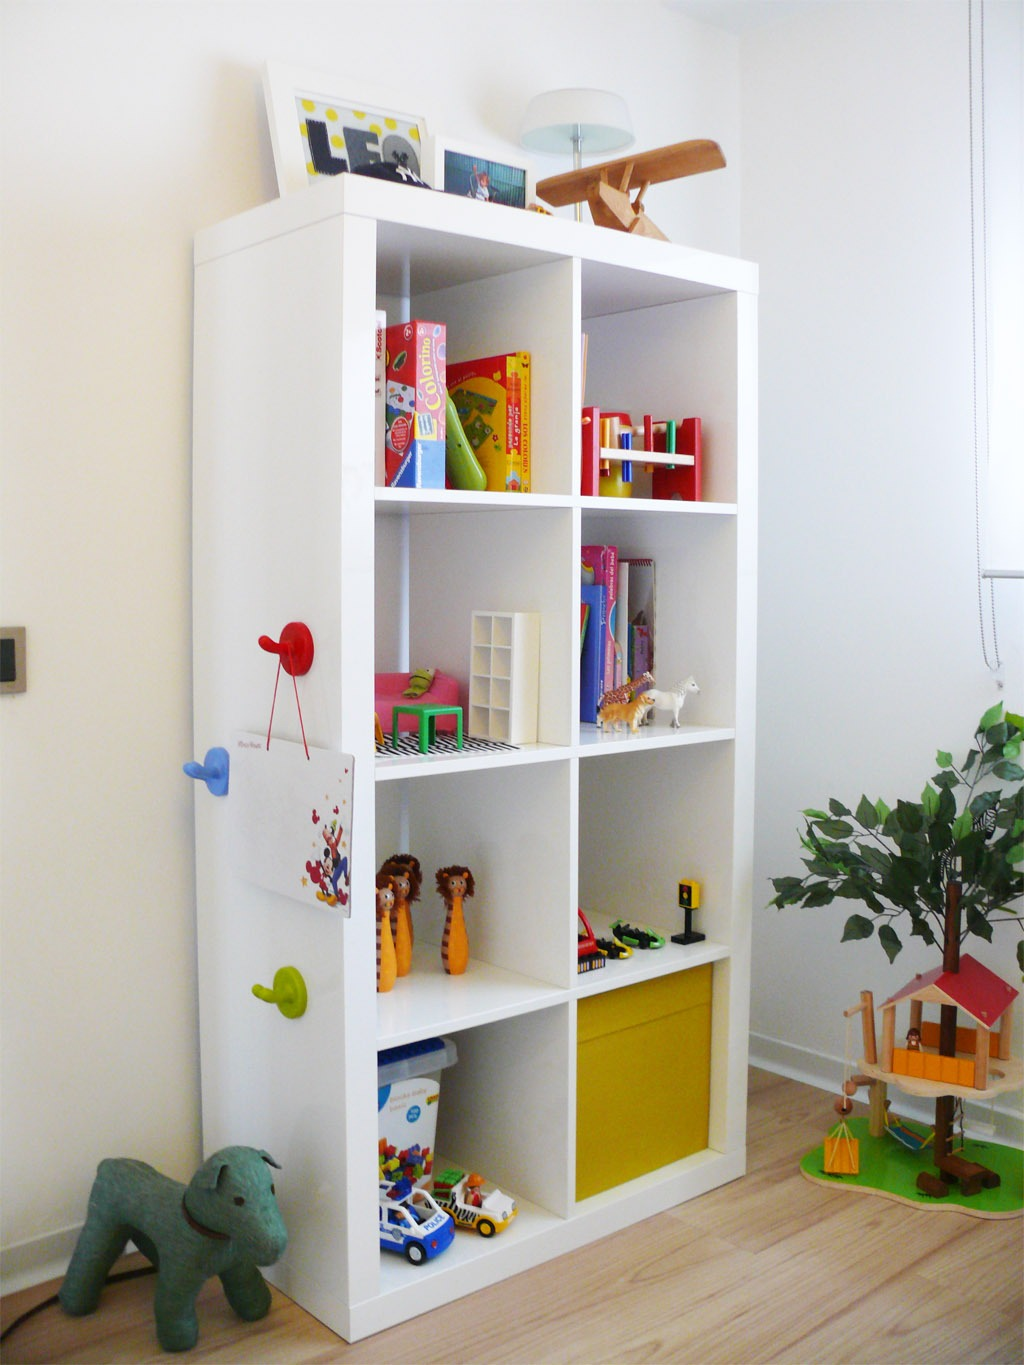 Dormitorios infantiles ideas para decorarlos rutchicote - Ideas para decorar dormitorio infantil ...